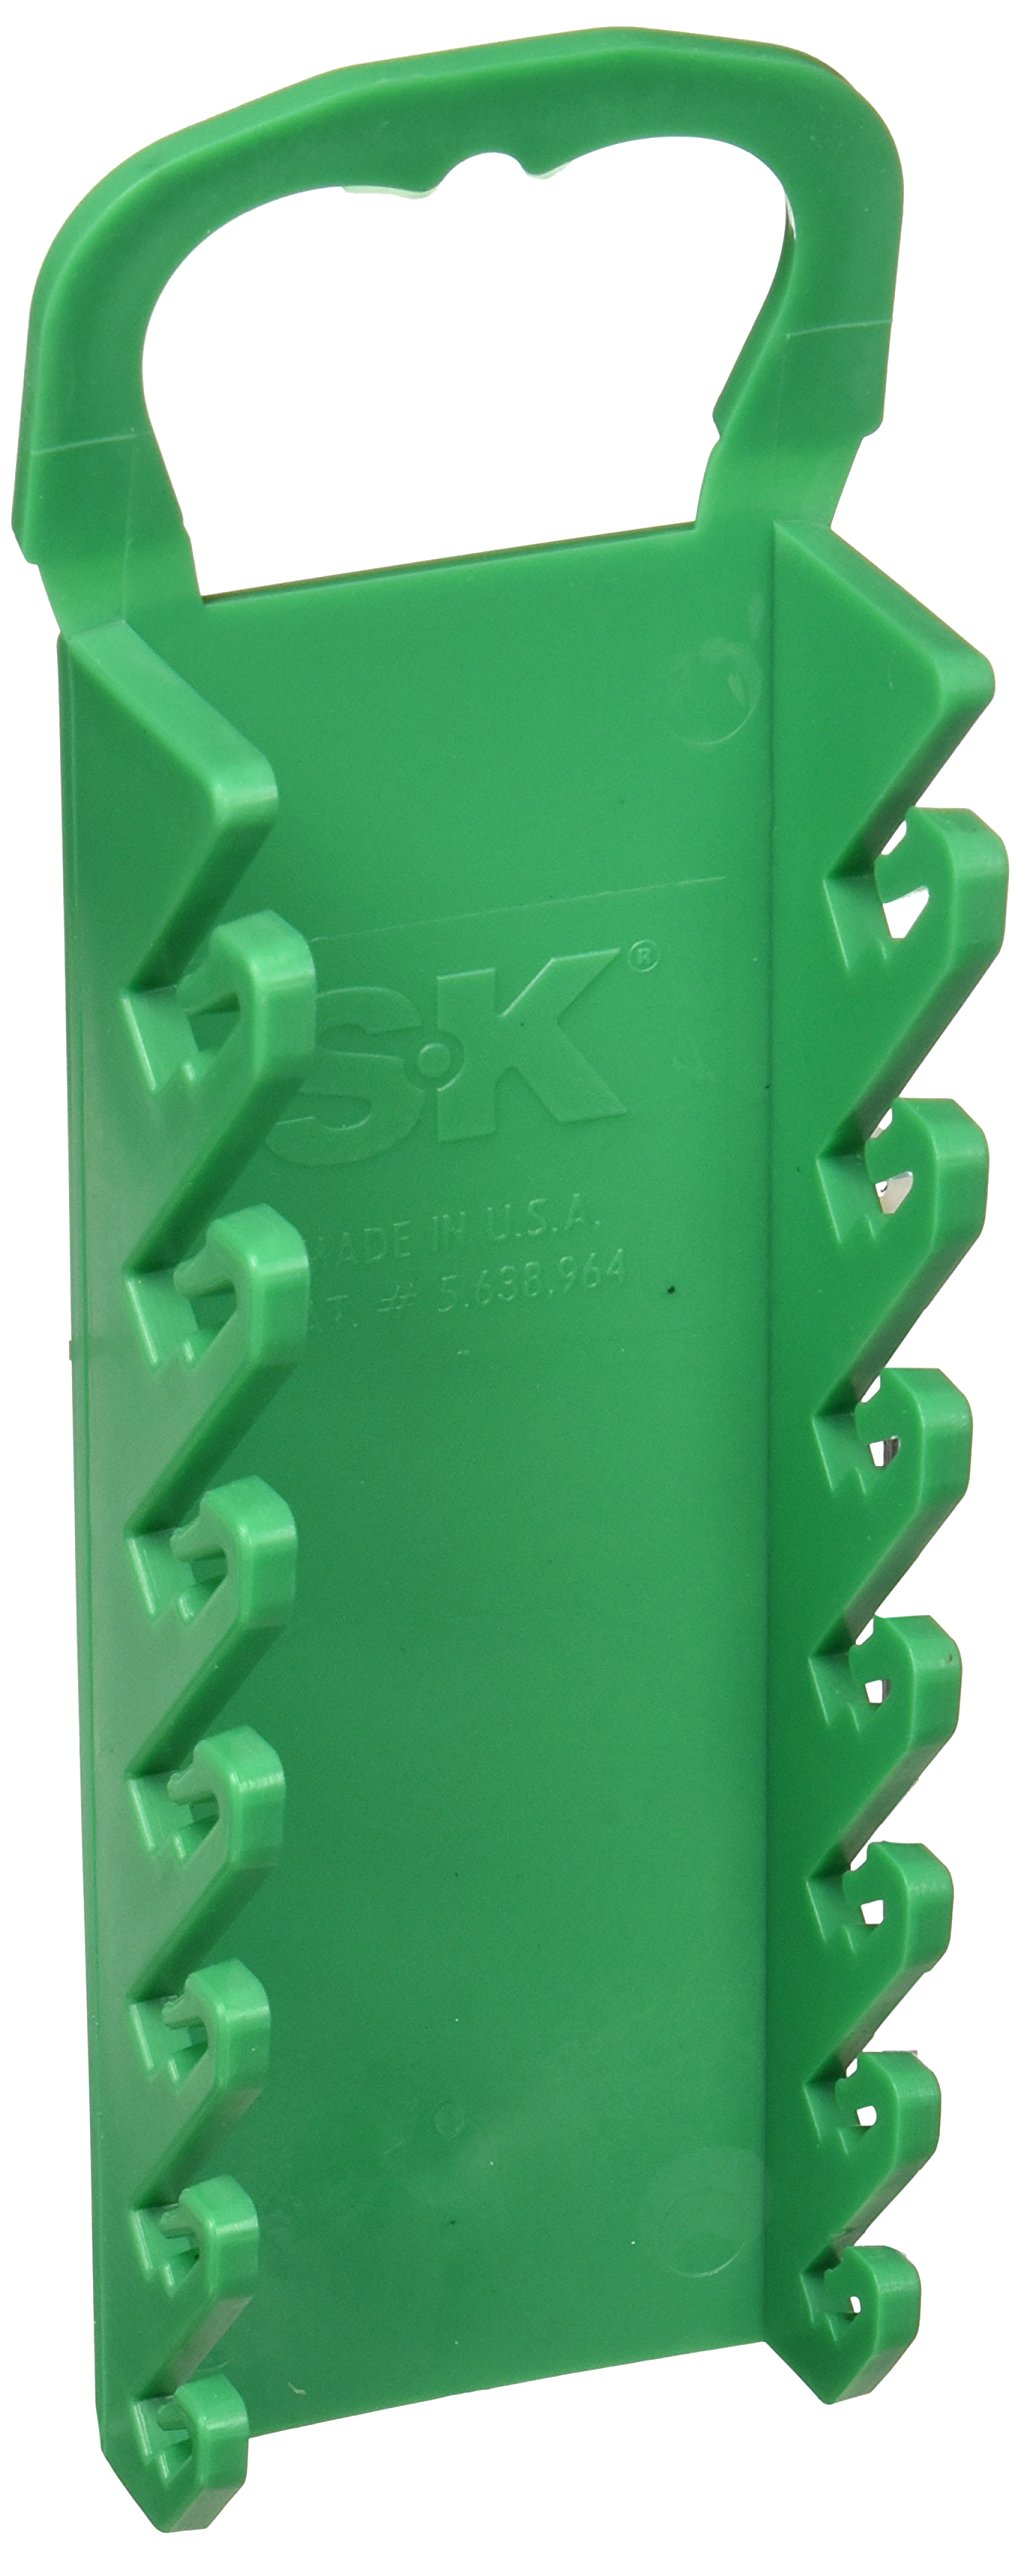 SK Hand Tool 1086G Wrench Rack, Short, Green, 7-Piece